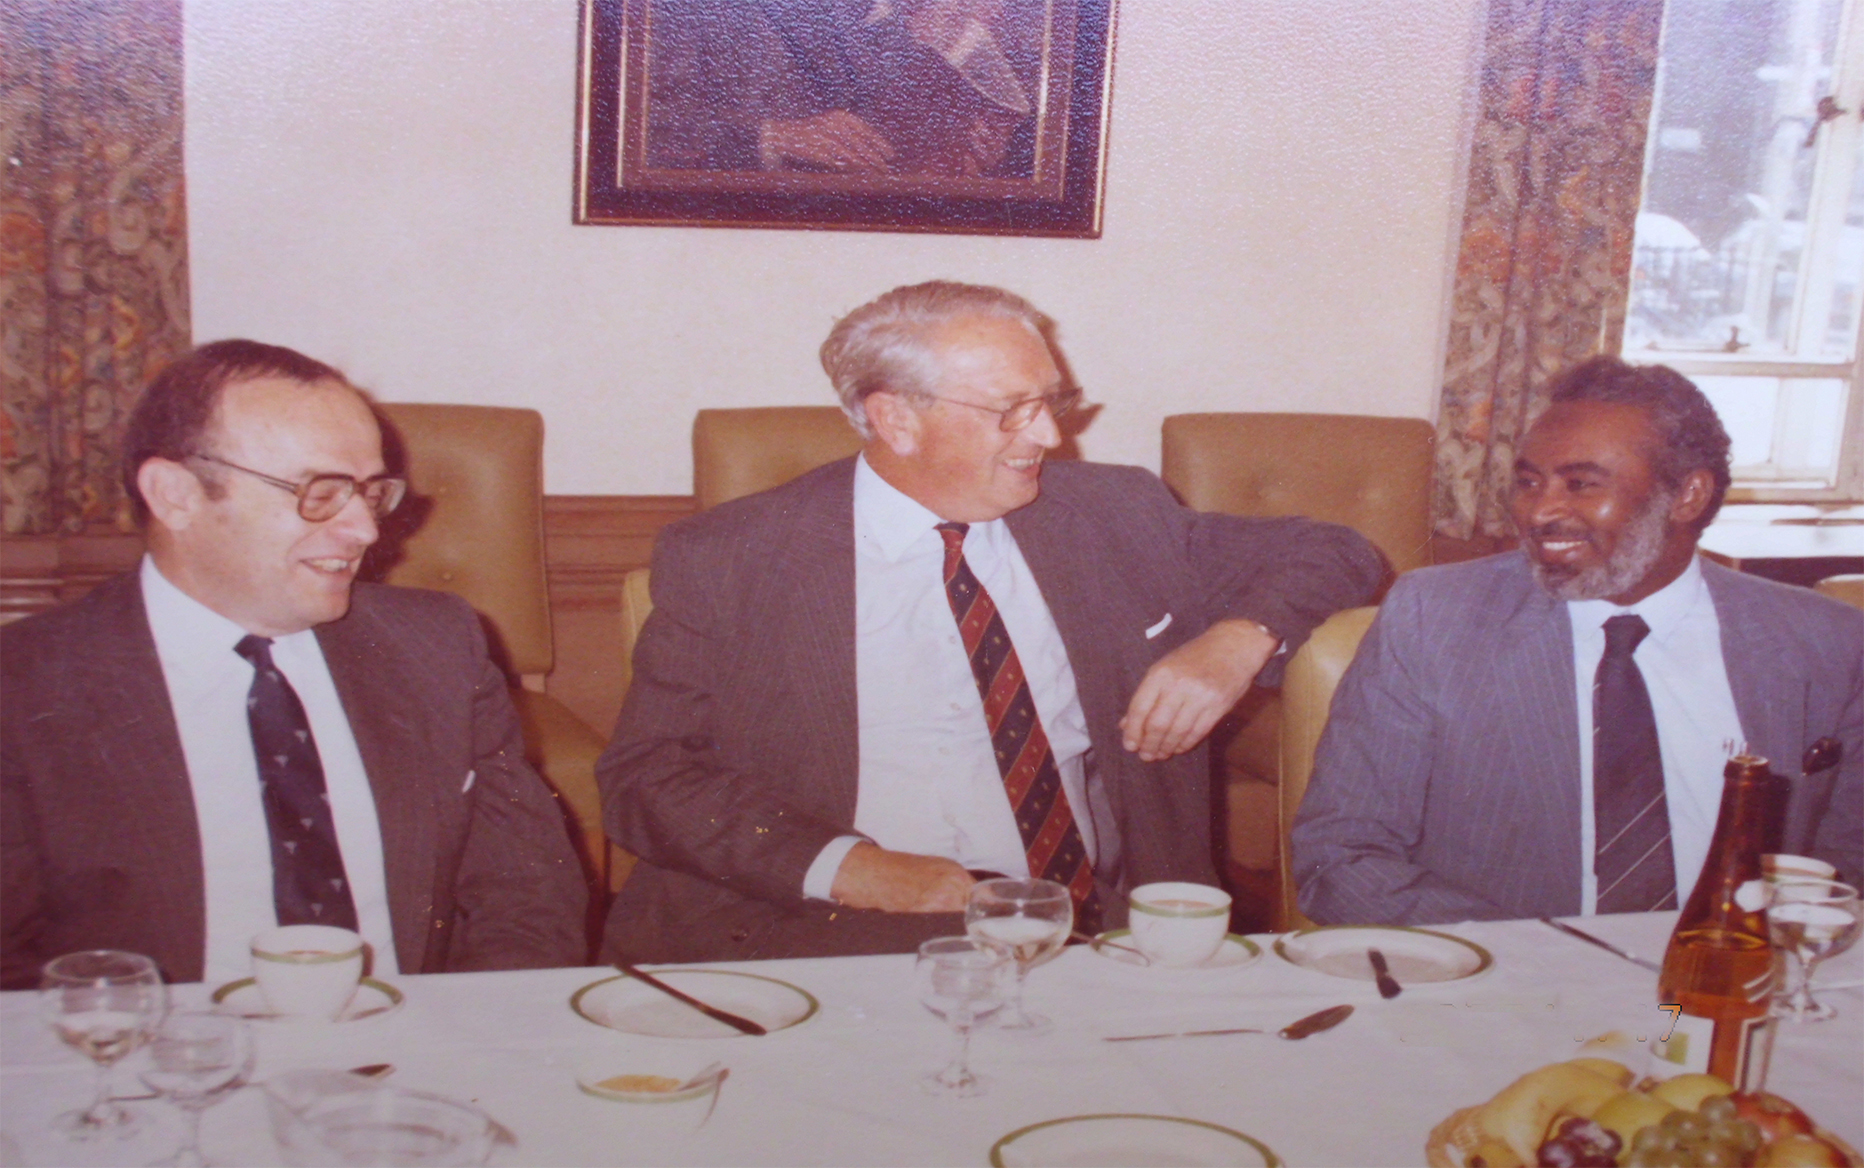 Lunch-with-Dean-smith-1978